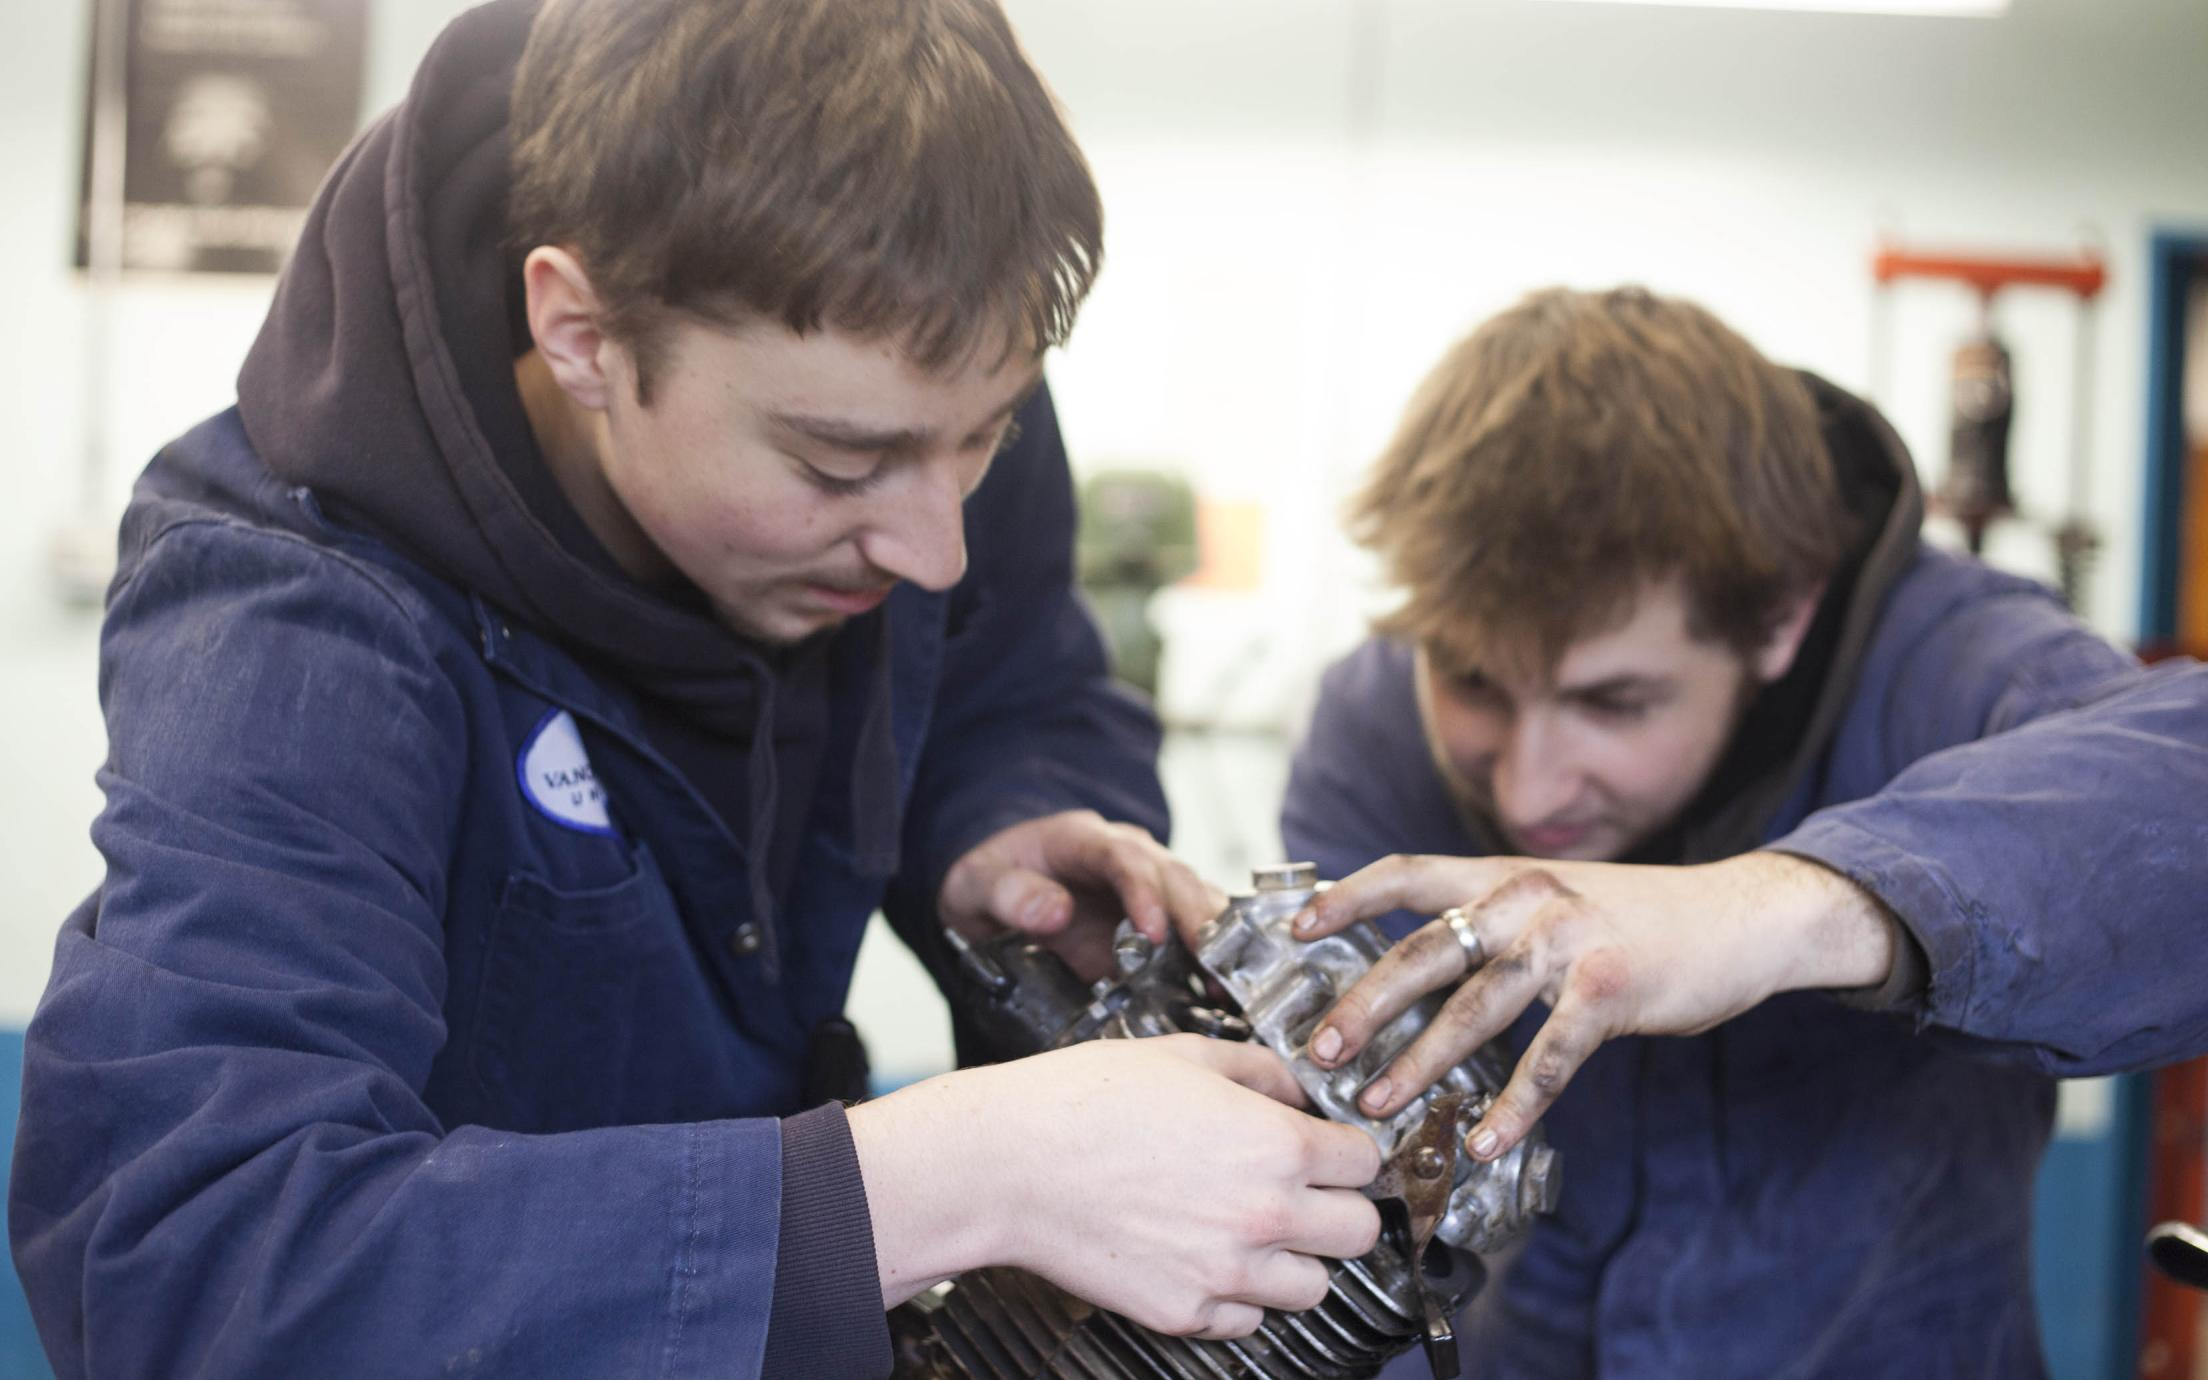 Students of the Marine Technician and Motorcycle Mechanic program repairing on an engine